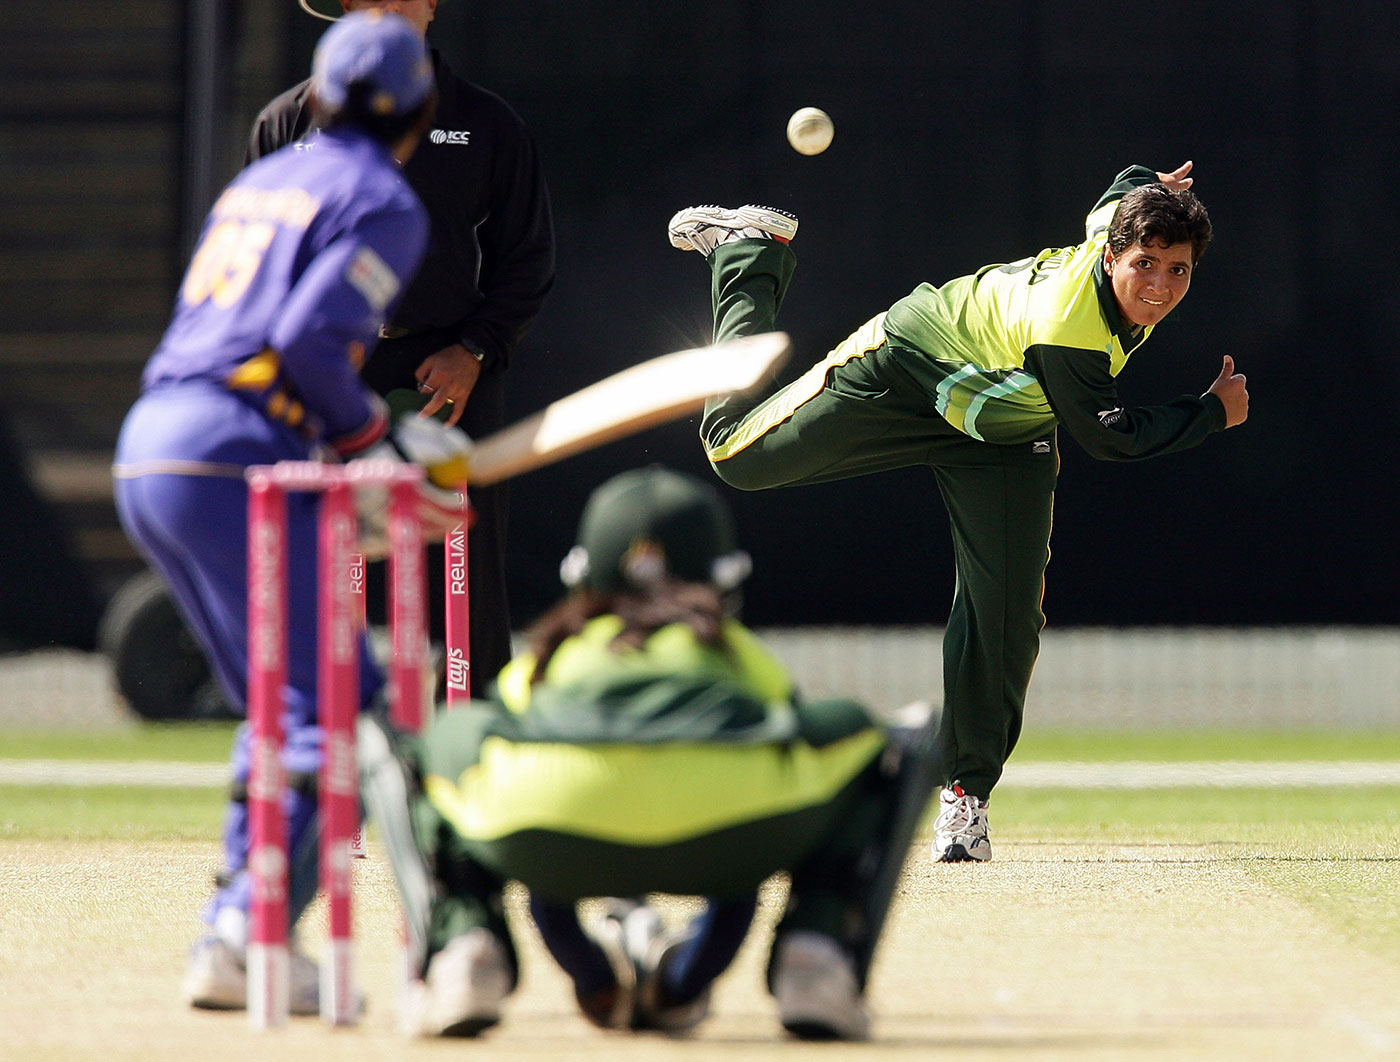 Sajjida Shah was 12 when she was picked to play for Pakistan and went on a hunger strike when her parents tried to stop her from going on an international tour